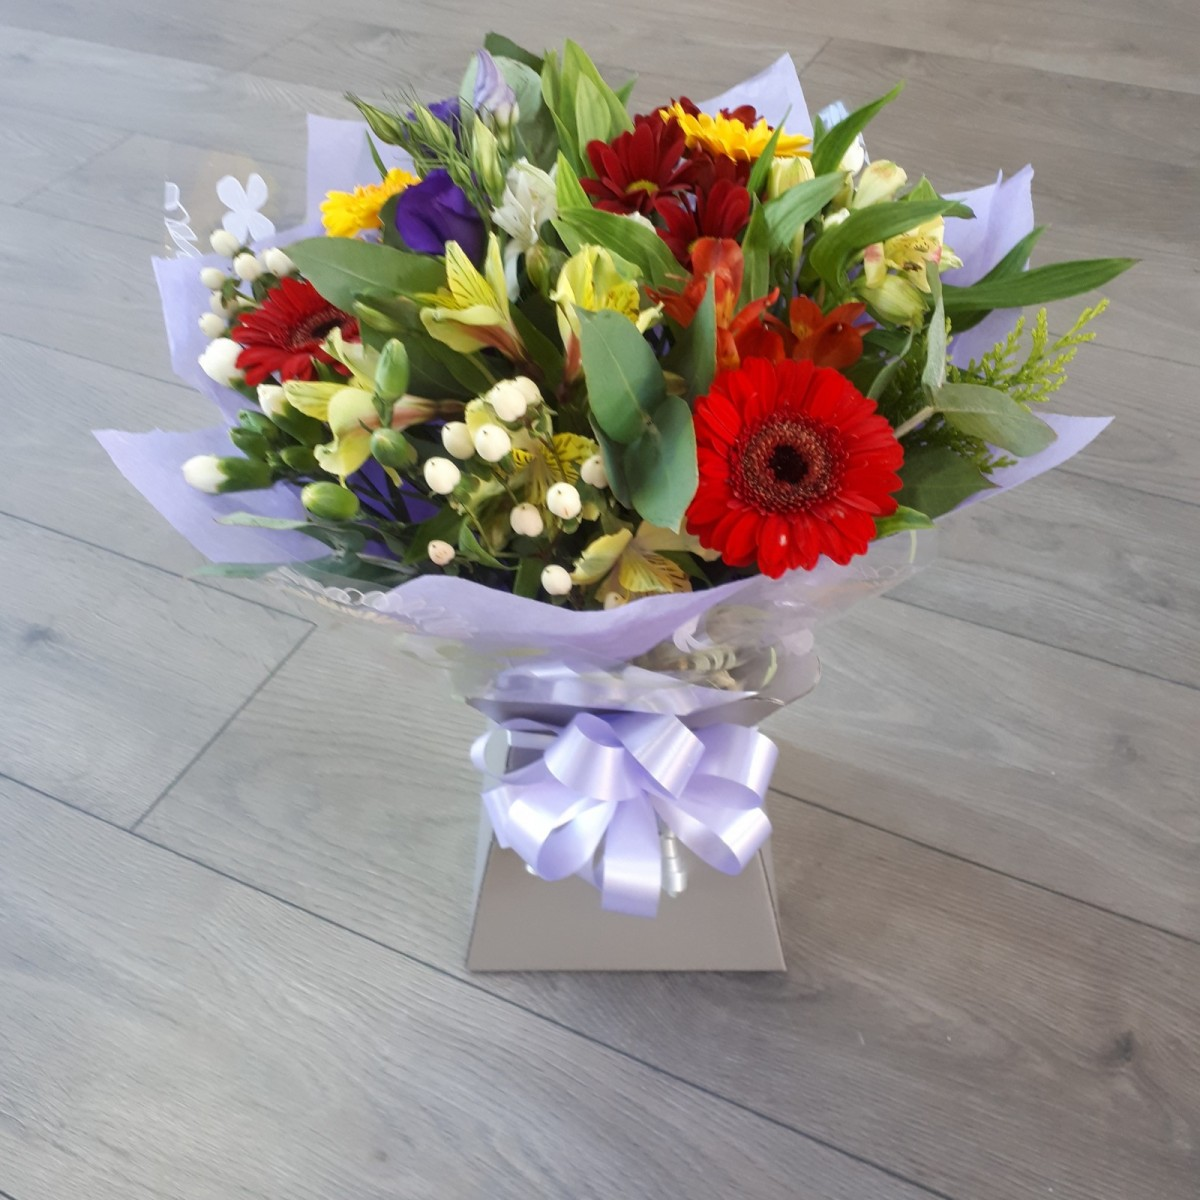 in the Aqua pack Bouquets category